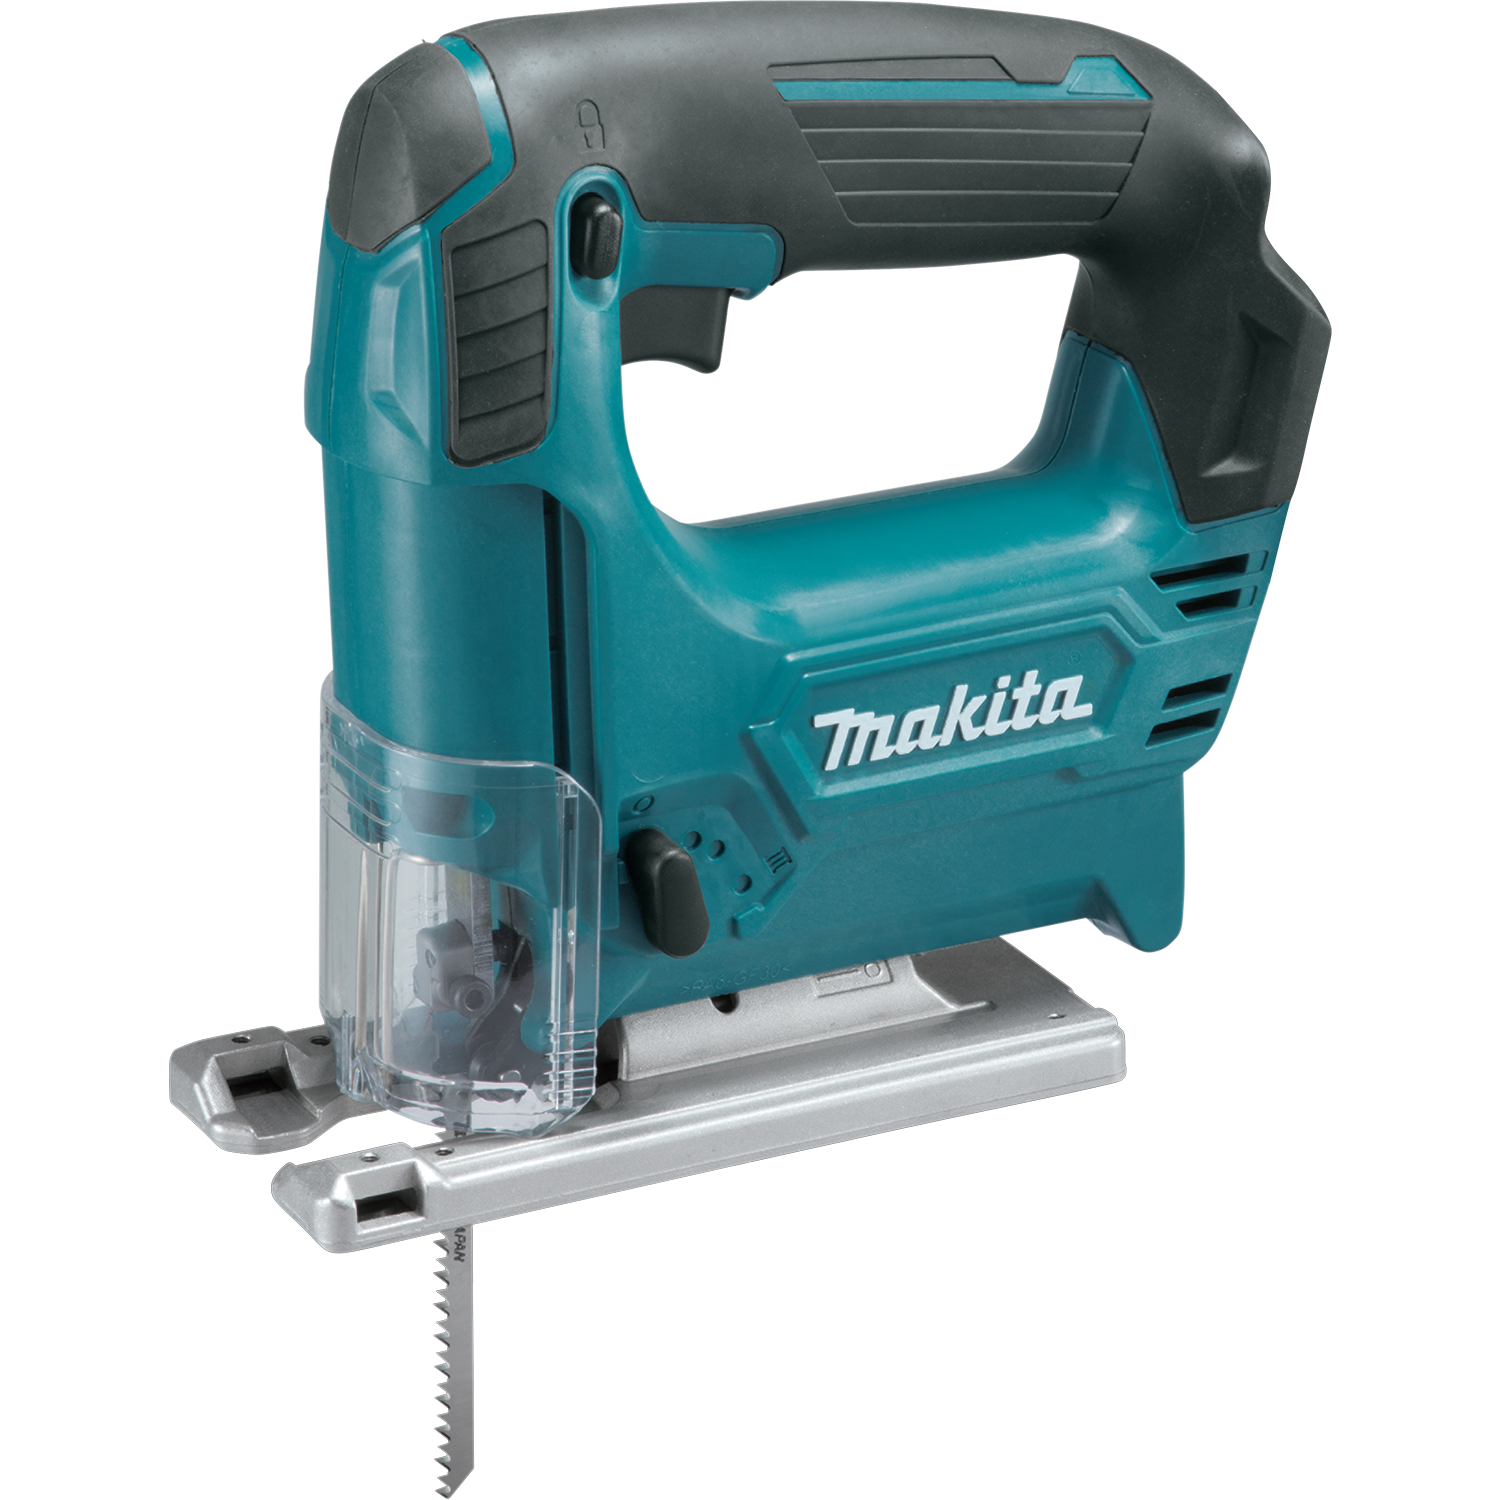 Makita usa product details vj04z vj04z greentooth Image collections